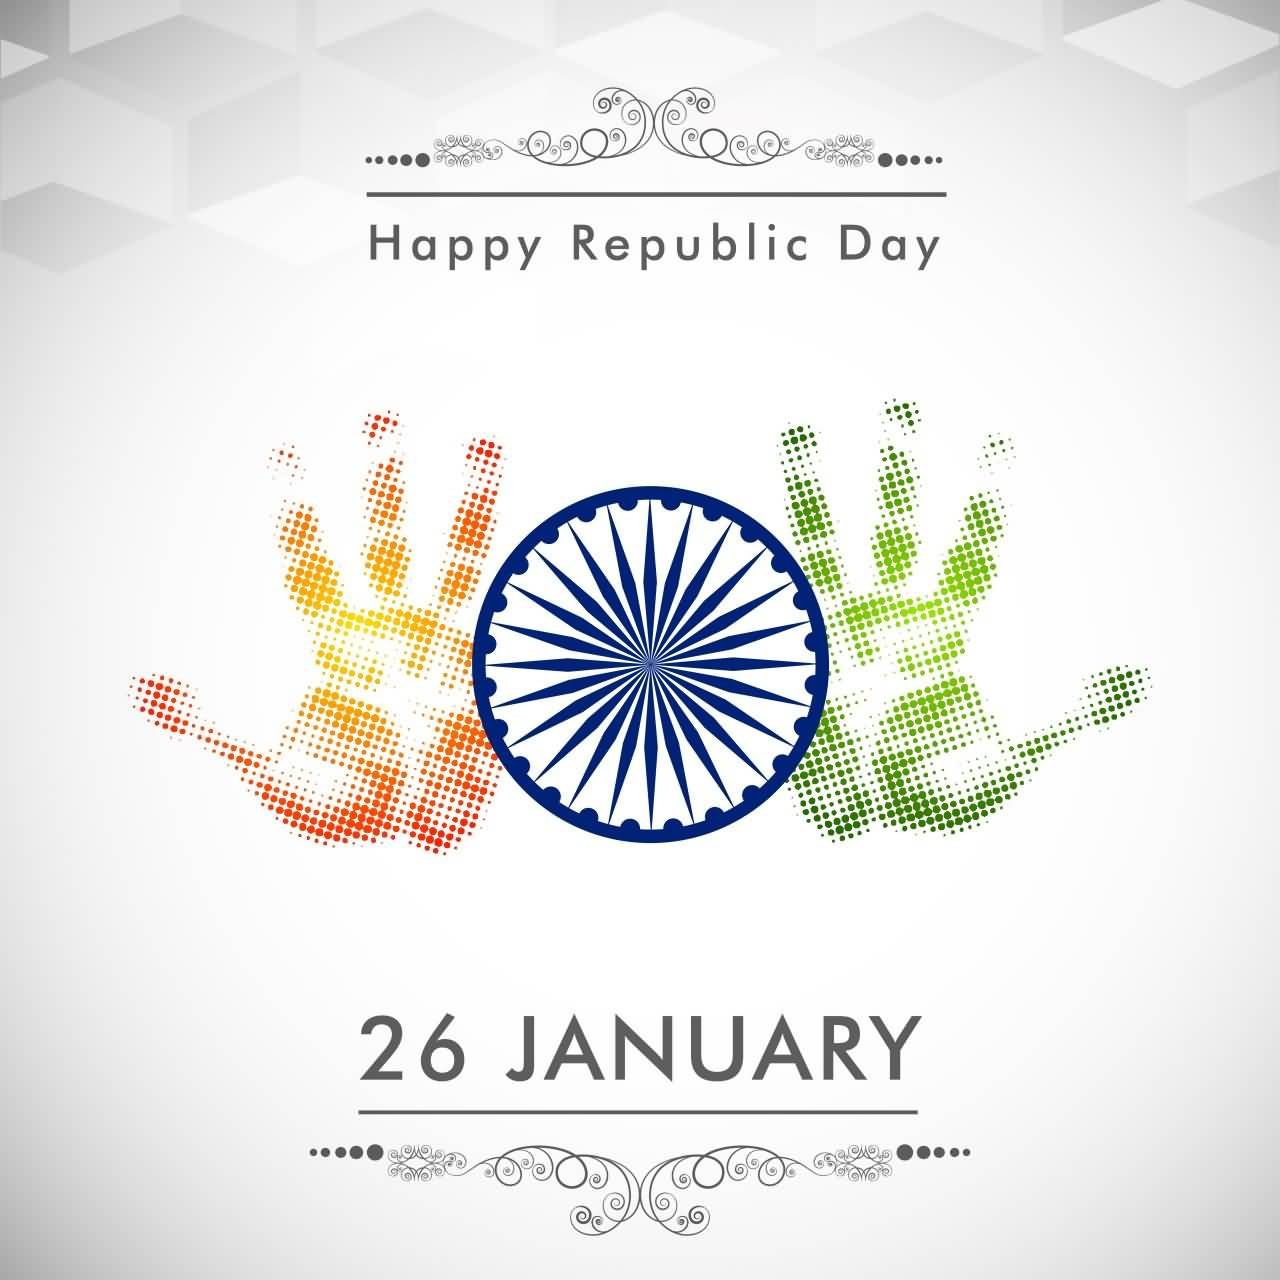 60 beautiful republic day india greeting card pictures happy republic day 26 january hand prints greeting card m4hsunfo